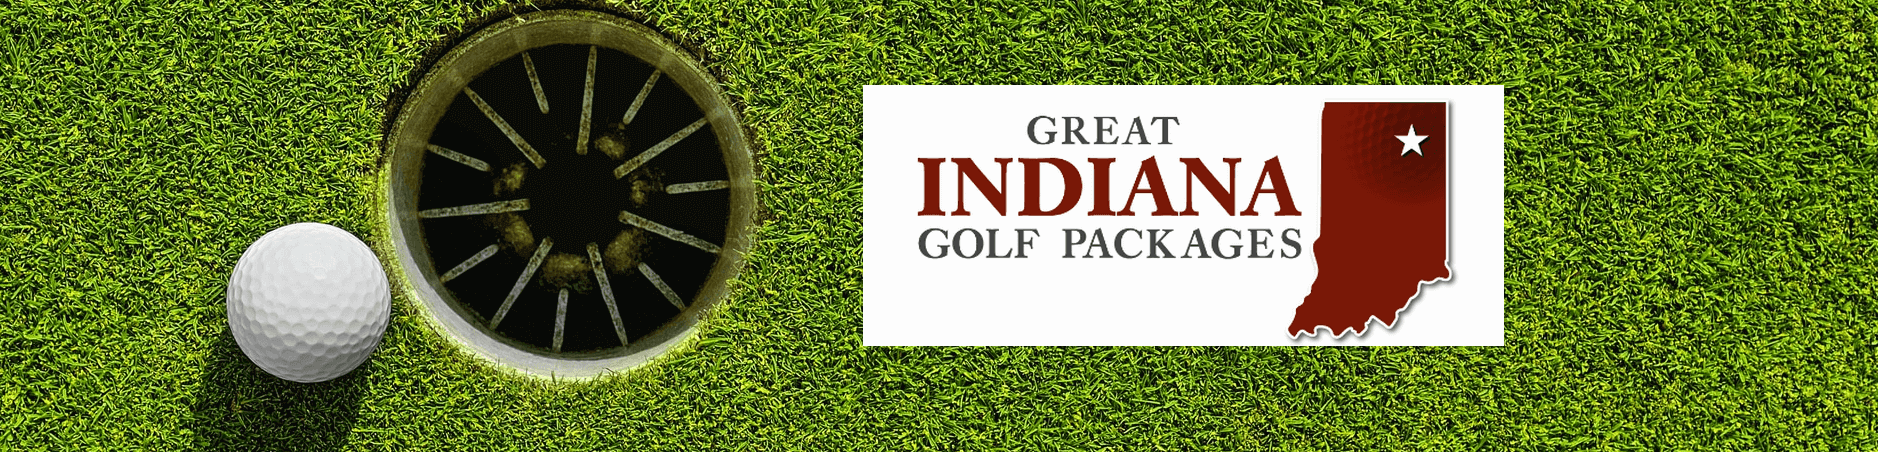 Great Indiana Golf Packages Logo